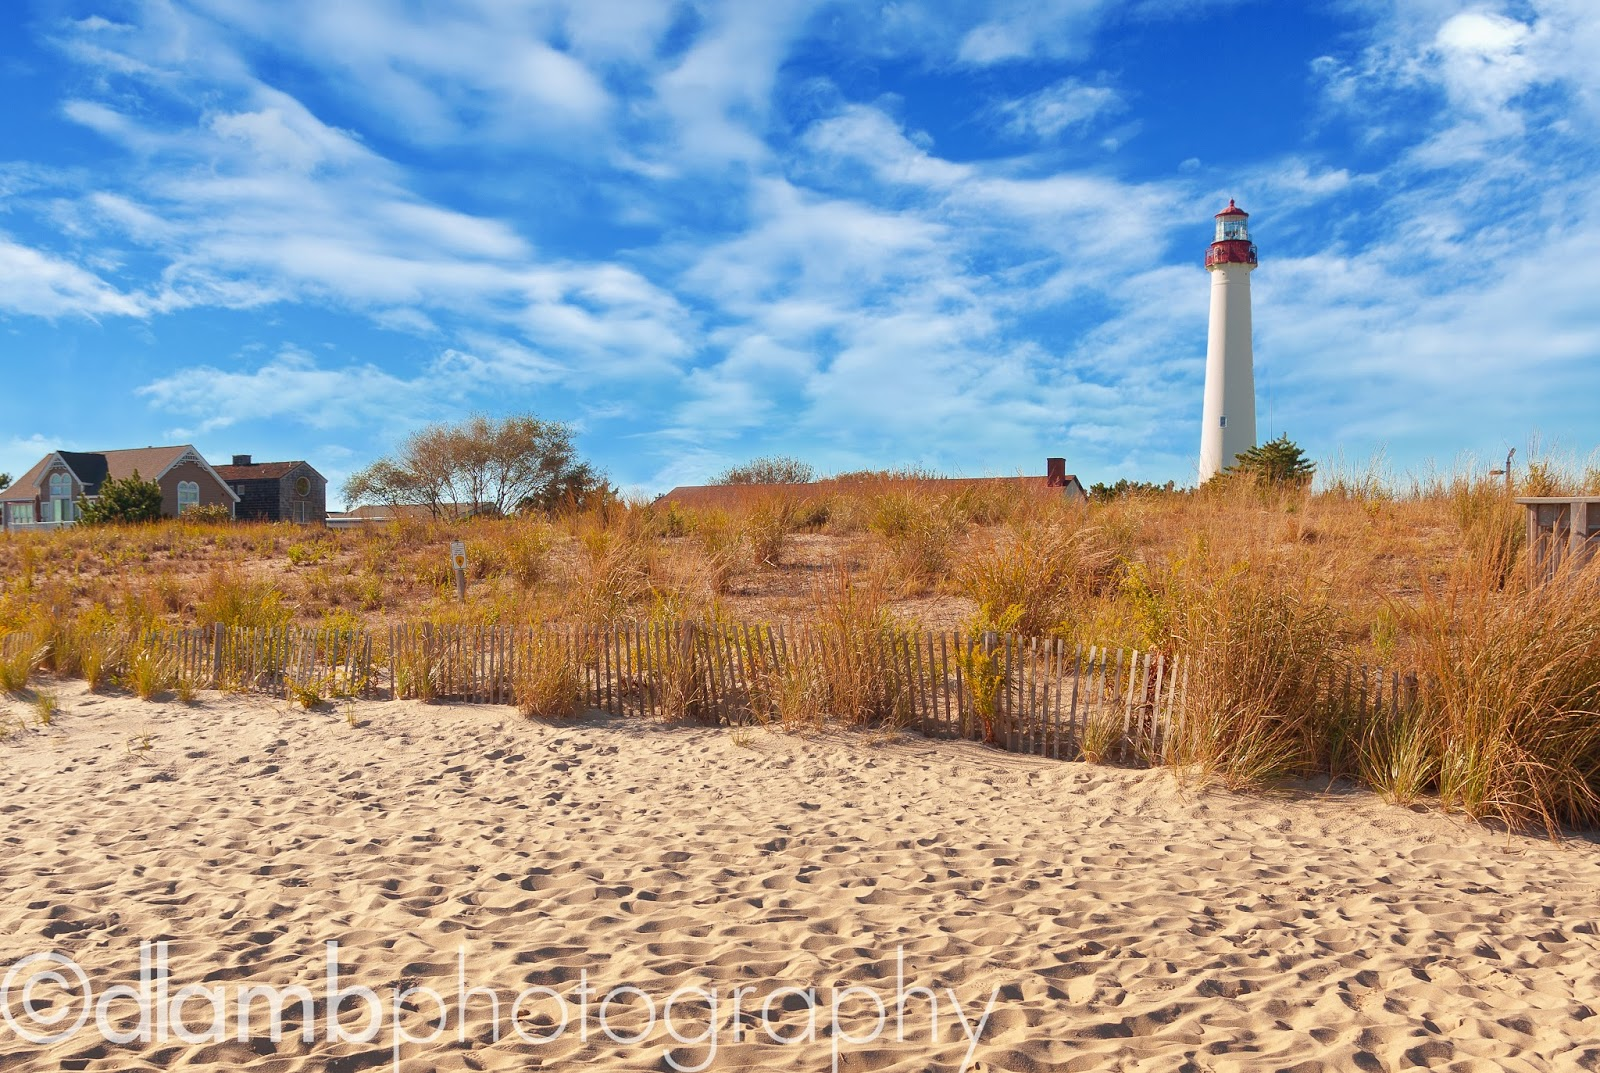 http://david-lamb.artistwebsites.com/featured/cape-may-lighthouse-david-lamb.html